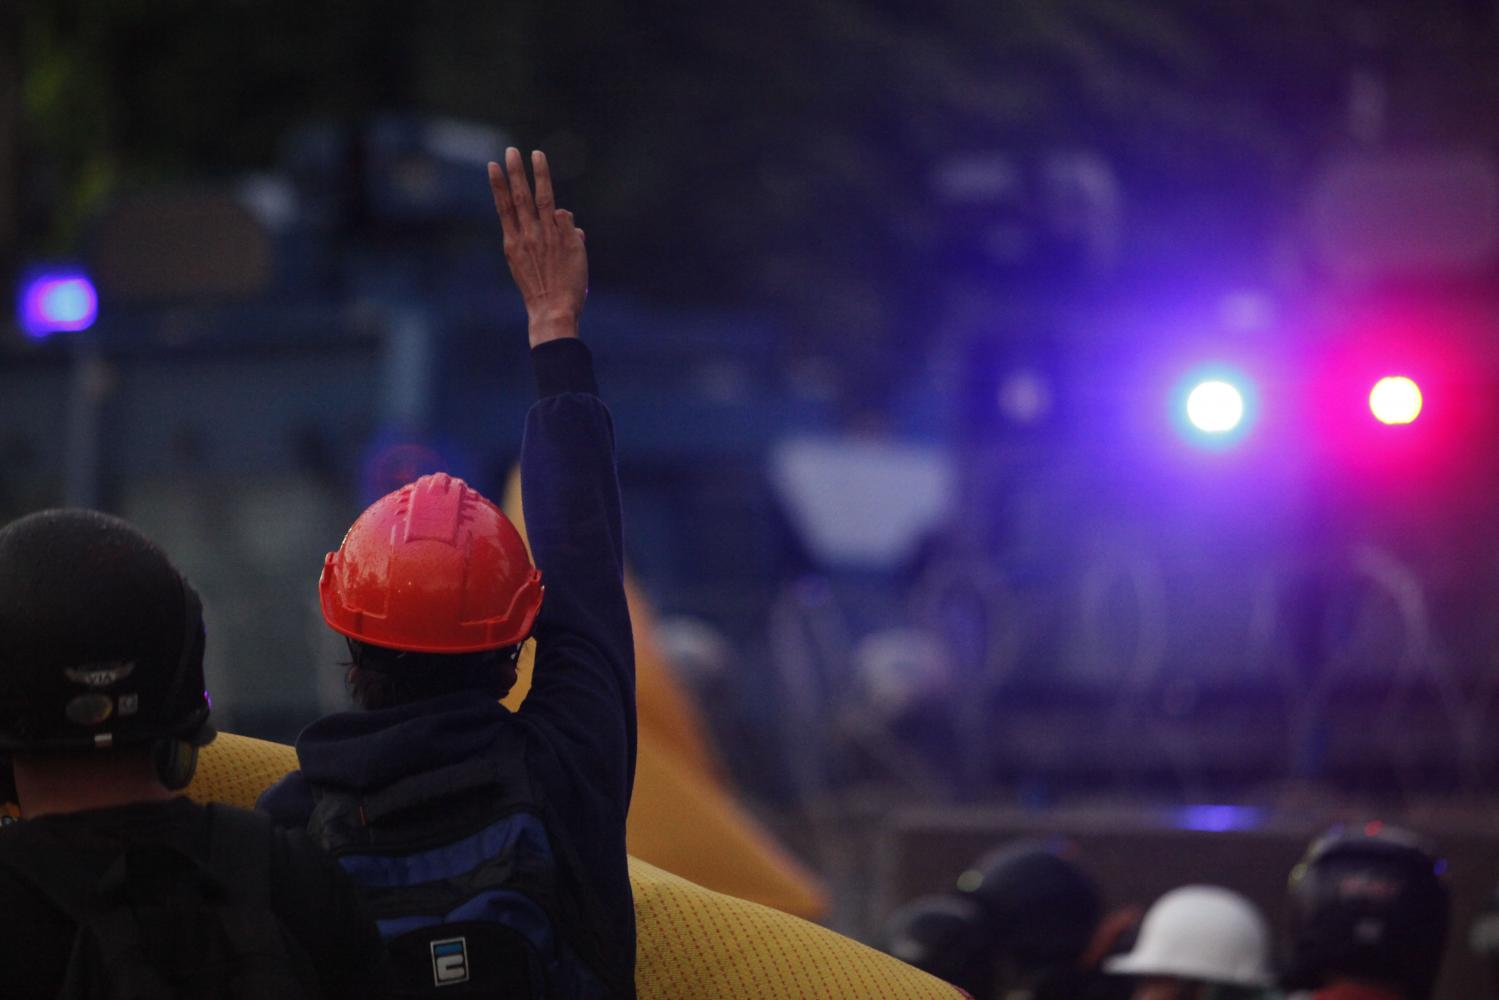 In this Nov 17 photo, a group of anti-government demonstrators clashes with riot police near the parliament building as a debate on charter rewrite is under way.Wichan Charoenkiatpakul